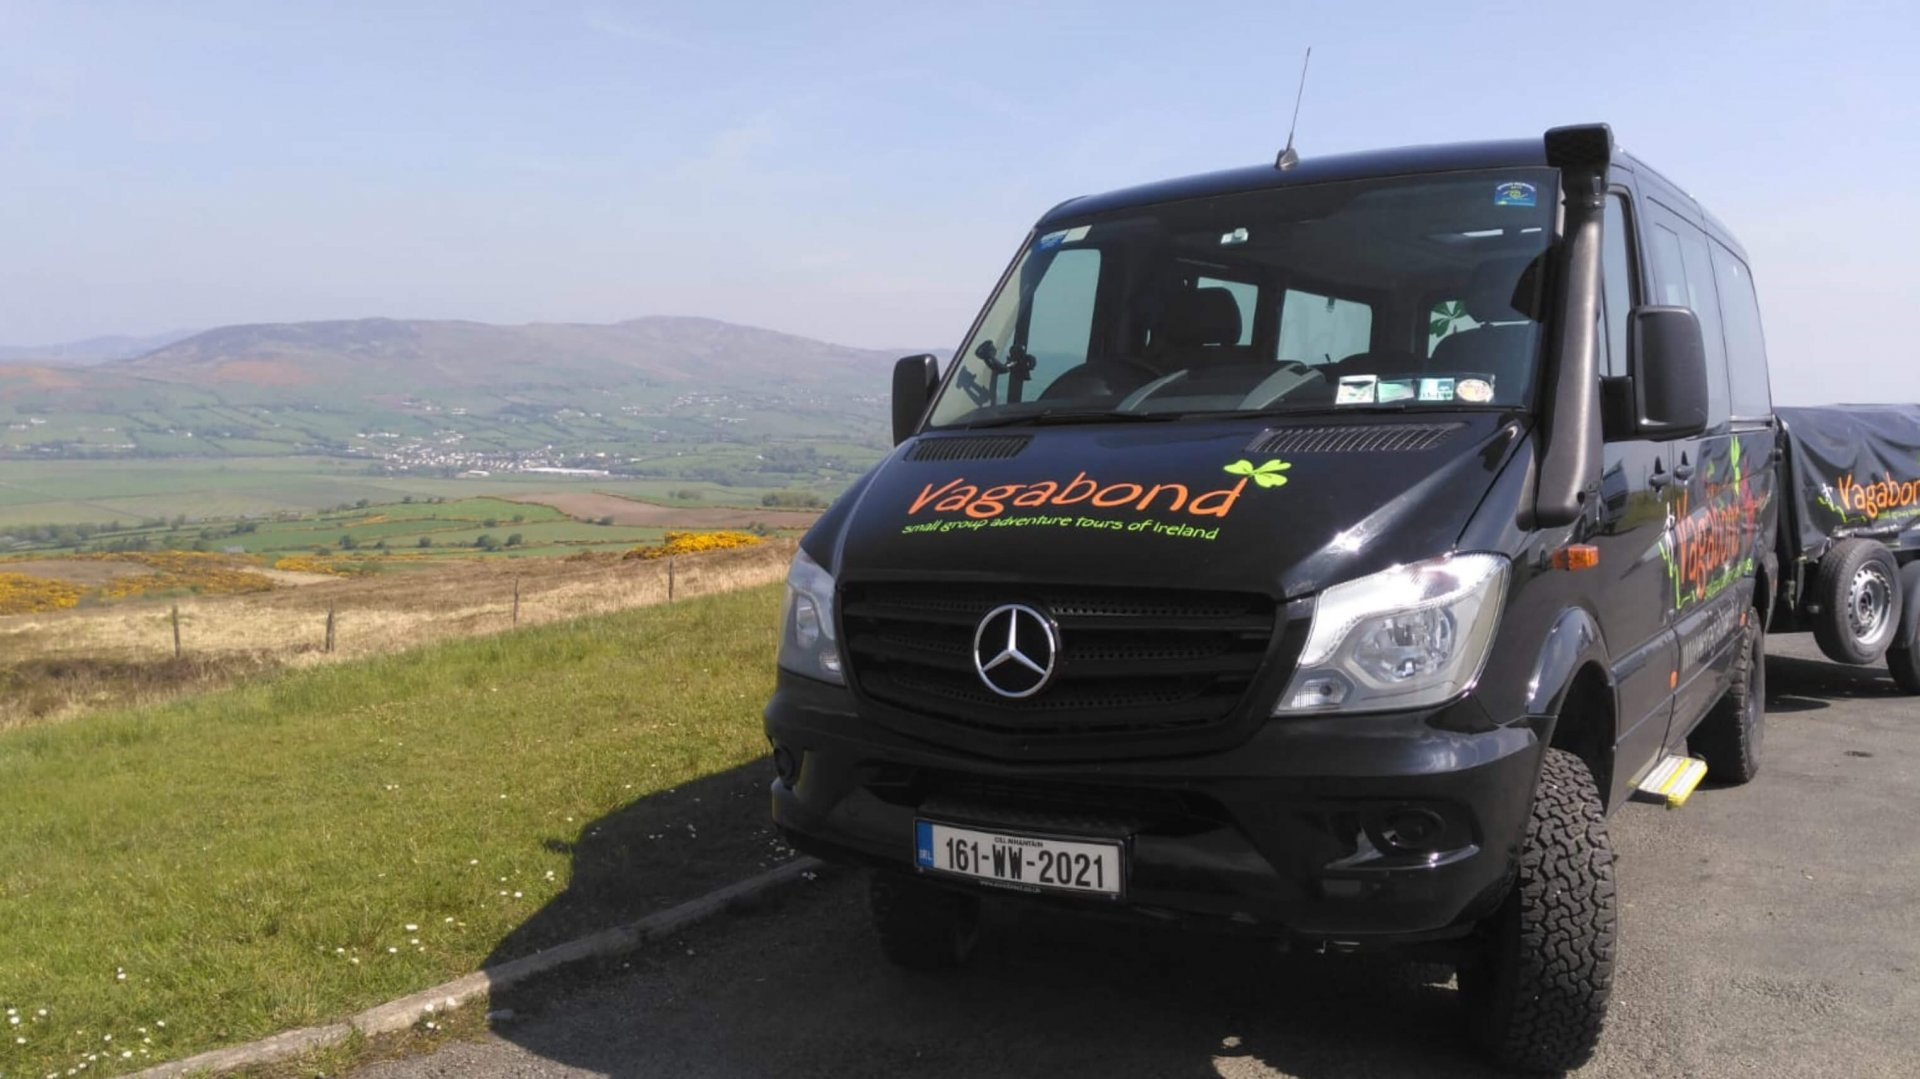 A 4x4 VagaTron touring vehicle parked up with blue skies and a lovely Irish landscape in the background